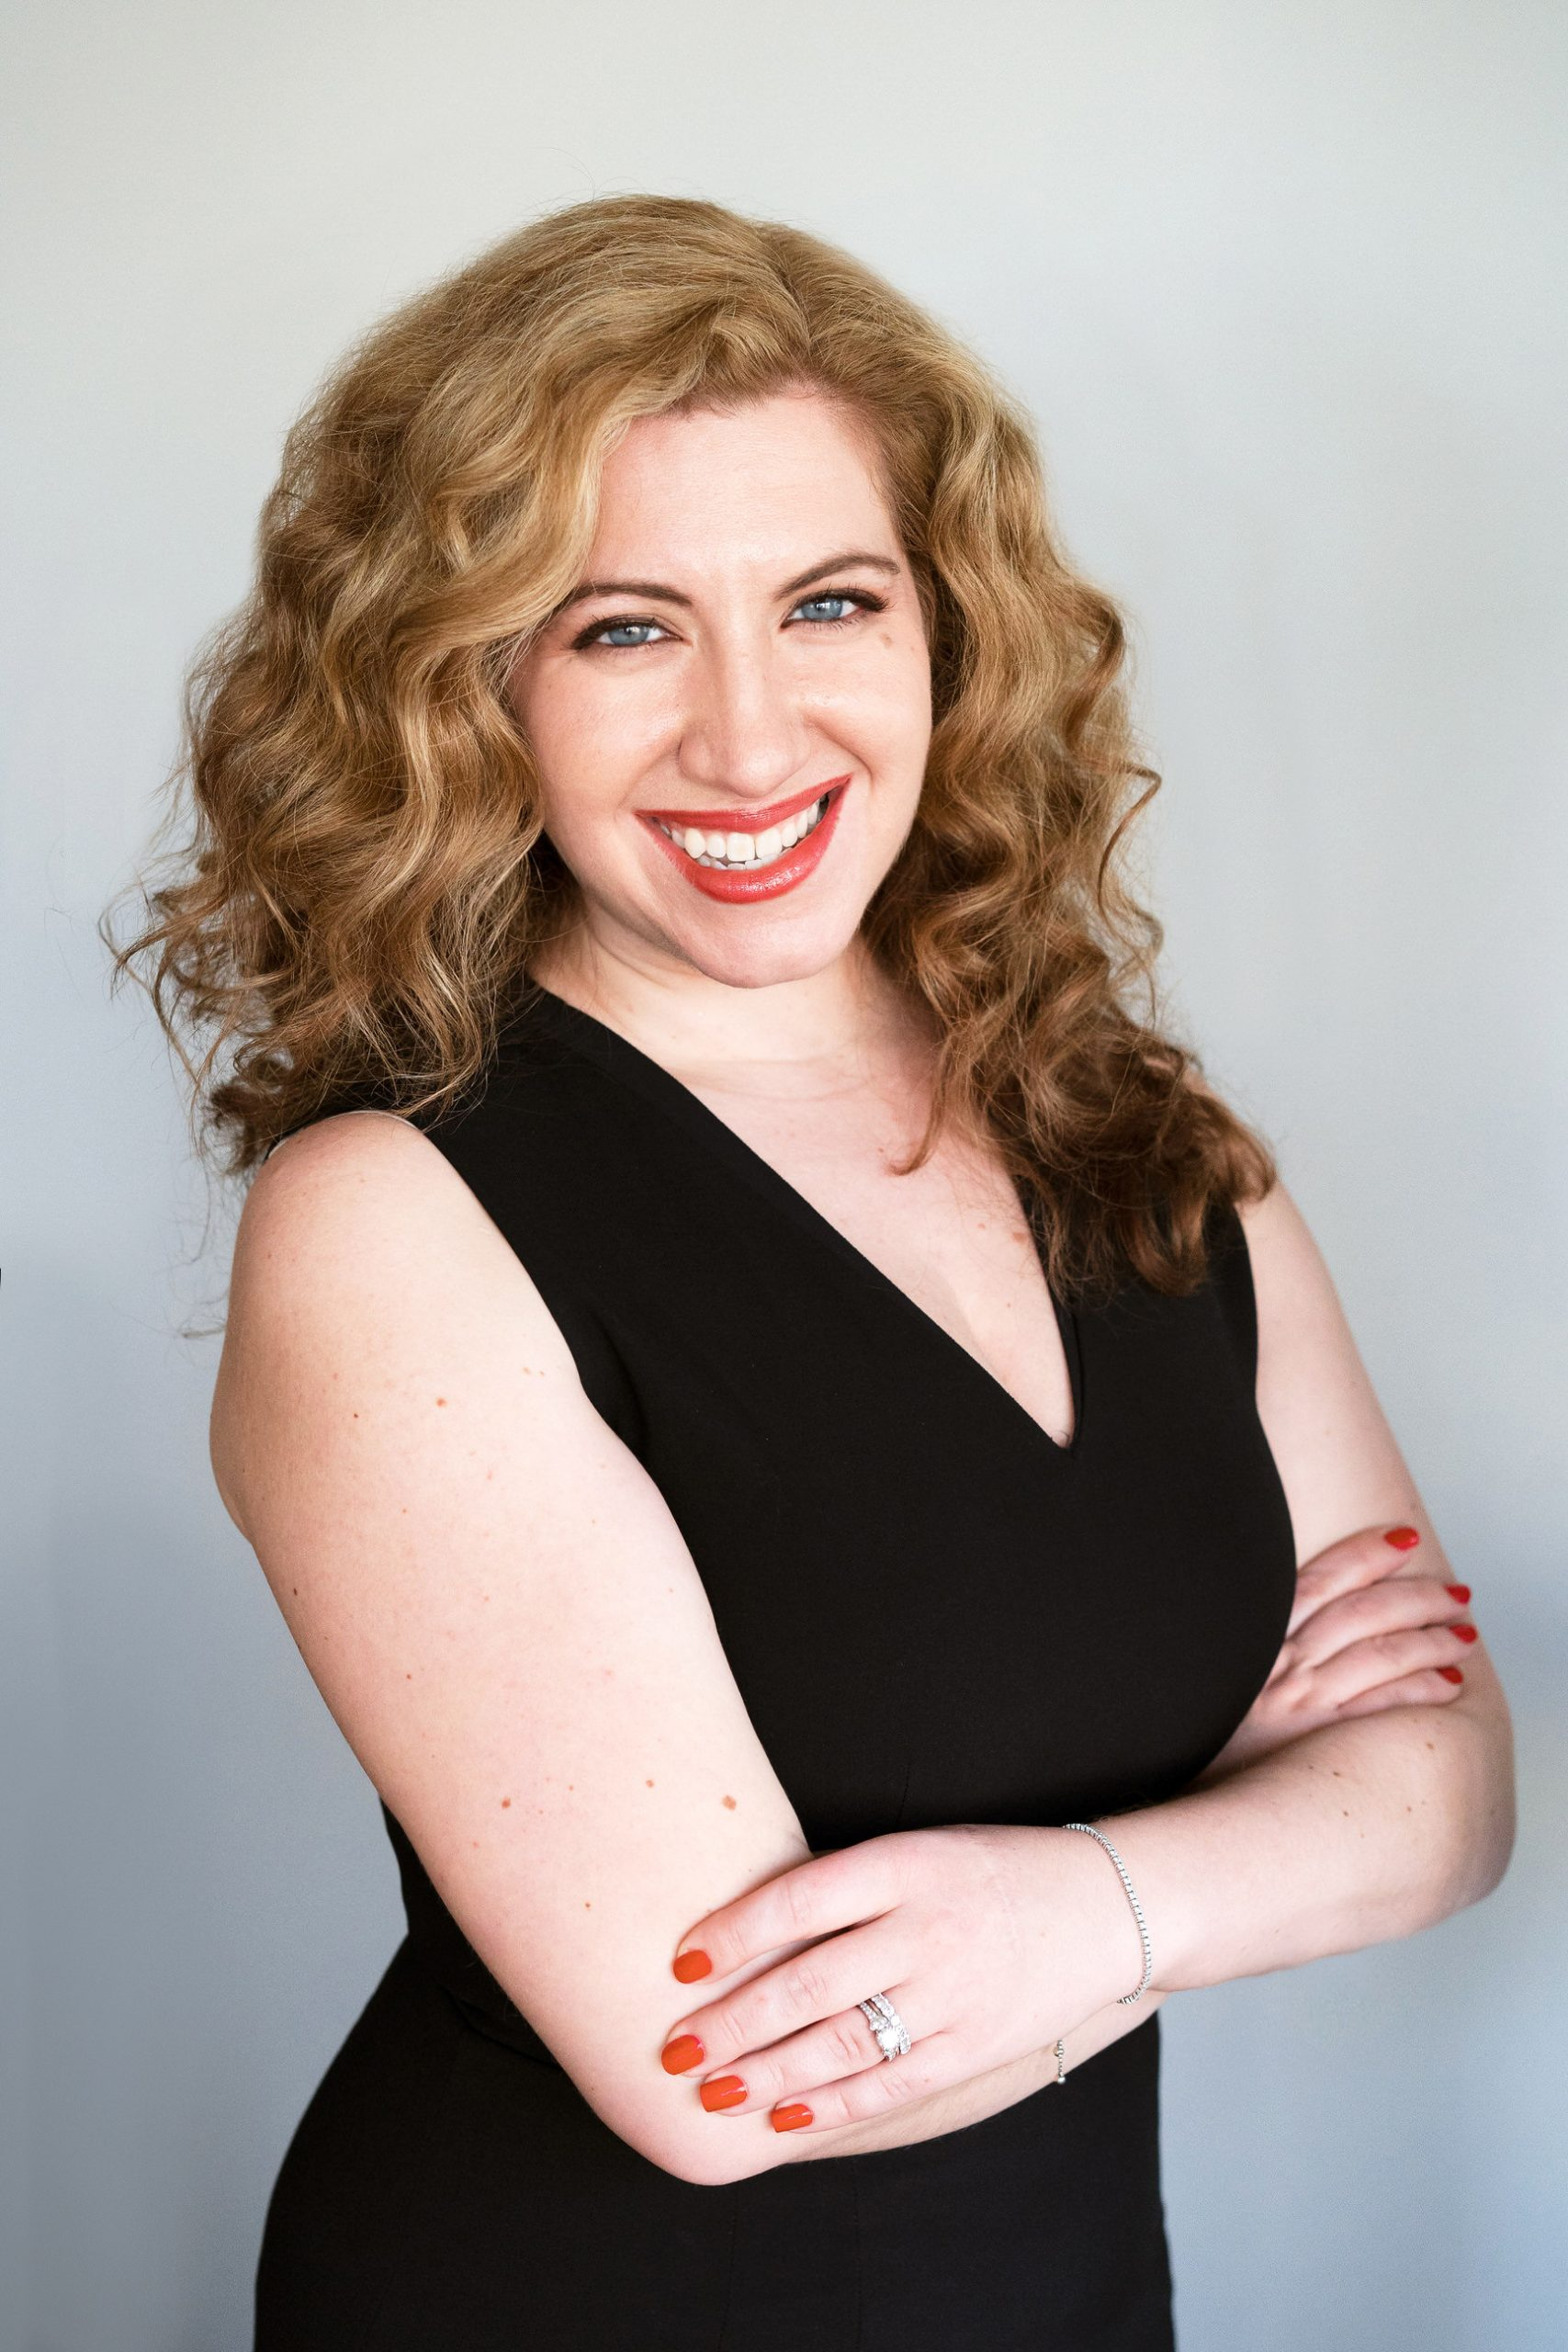 JAZZ NEWS: LLP Founder Lydia Liebman Named One of Forbes 30 Under 30 in Music